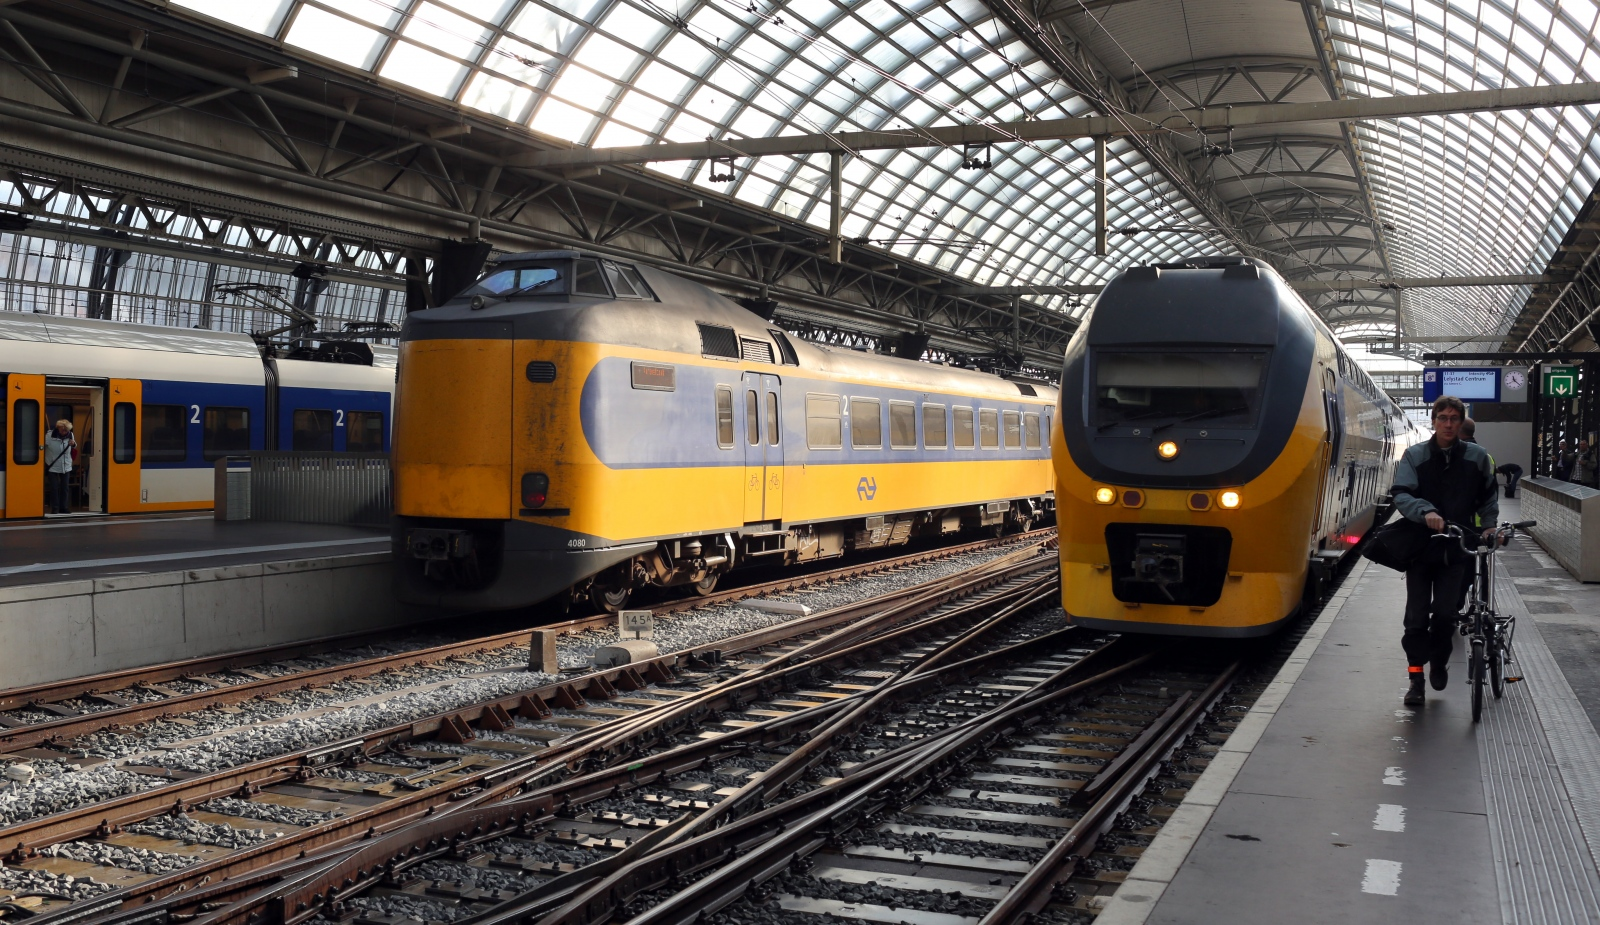 Rail transport in the Netherlands  uses a dense railway network, that connects virtually all major towns and cities, counting as many train stations as there are municipalities in the Netherlands.